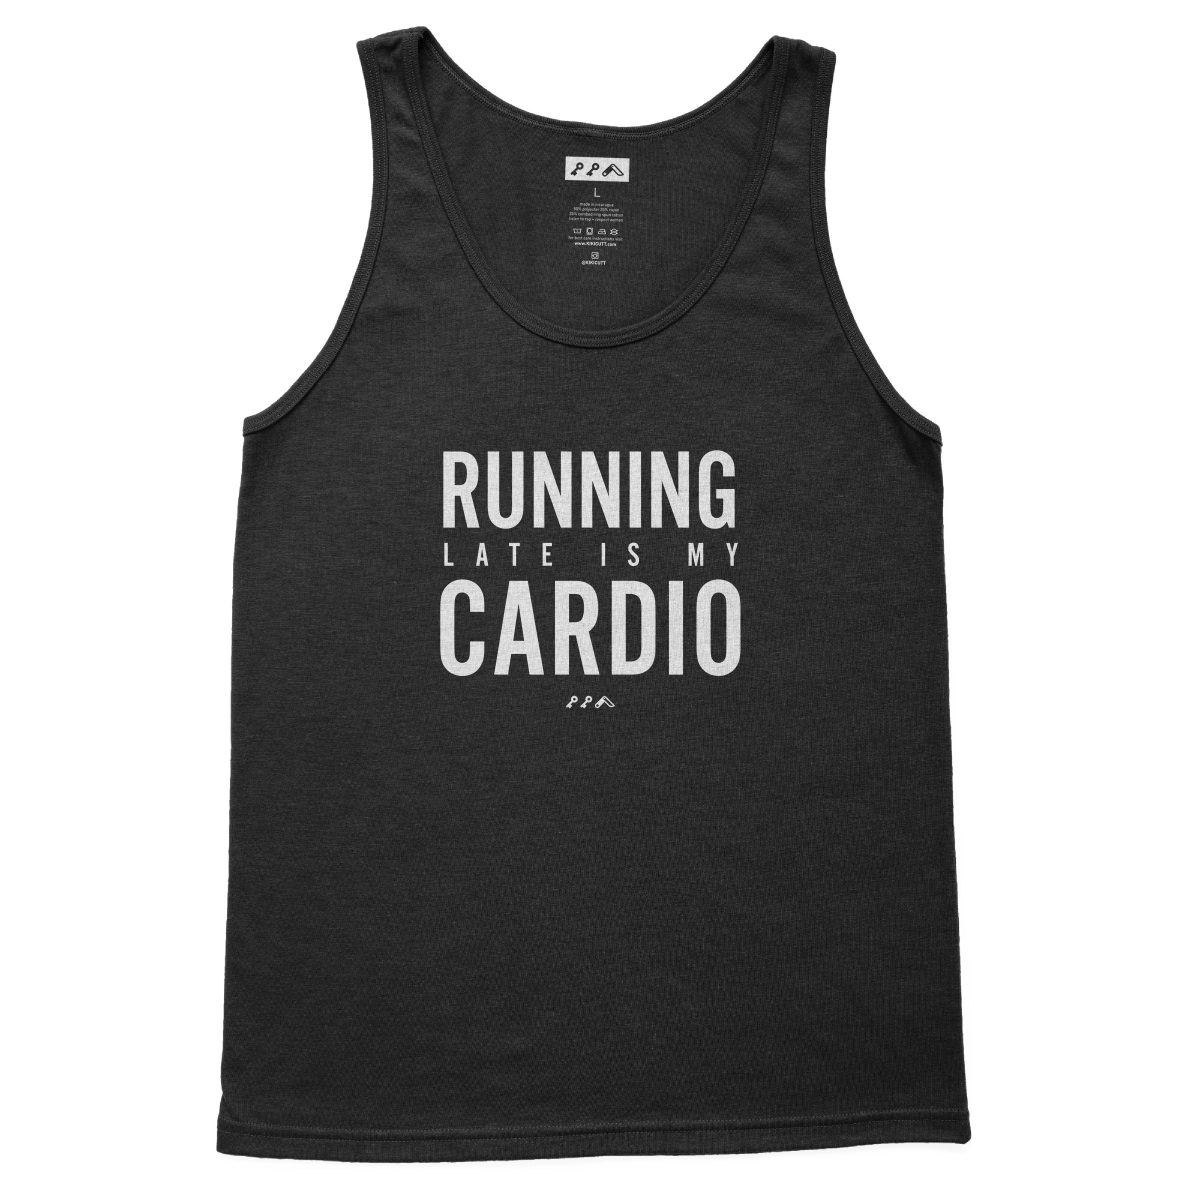 RUNNING LATE IS MY CARDIO funny exercise tank tops in black at kikicutt.com